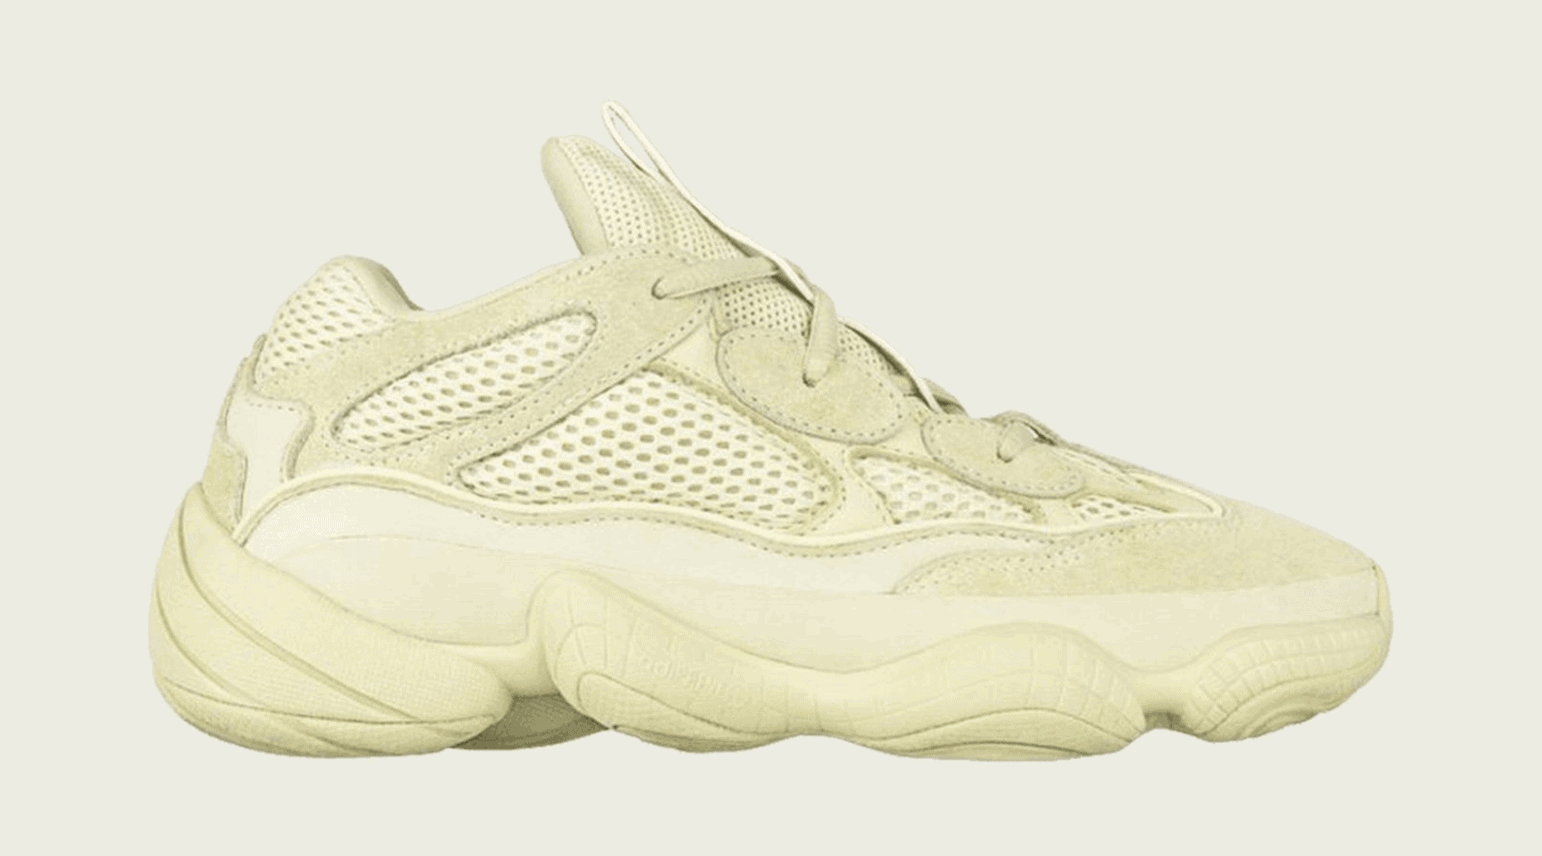 Adidas Yeezy Boost 500 Yellow Restock May 2018 Justfreshkicks